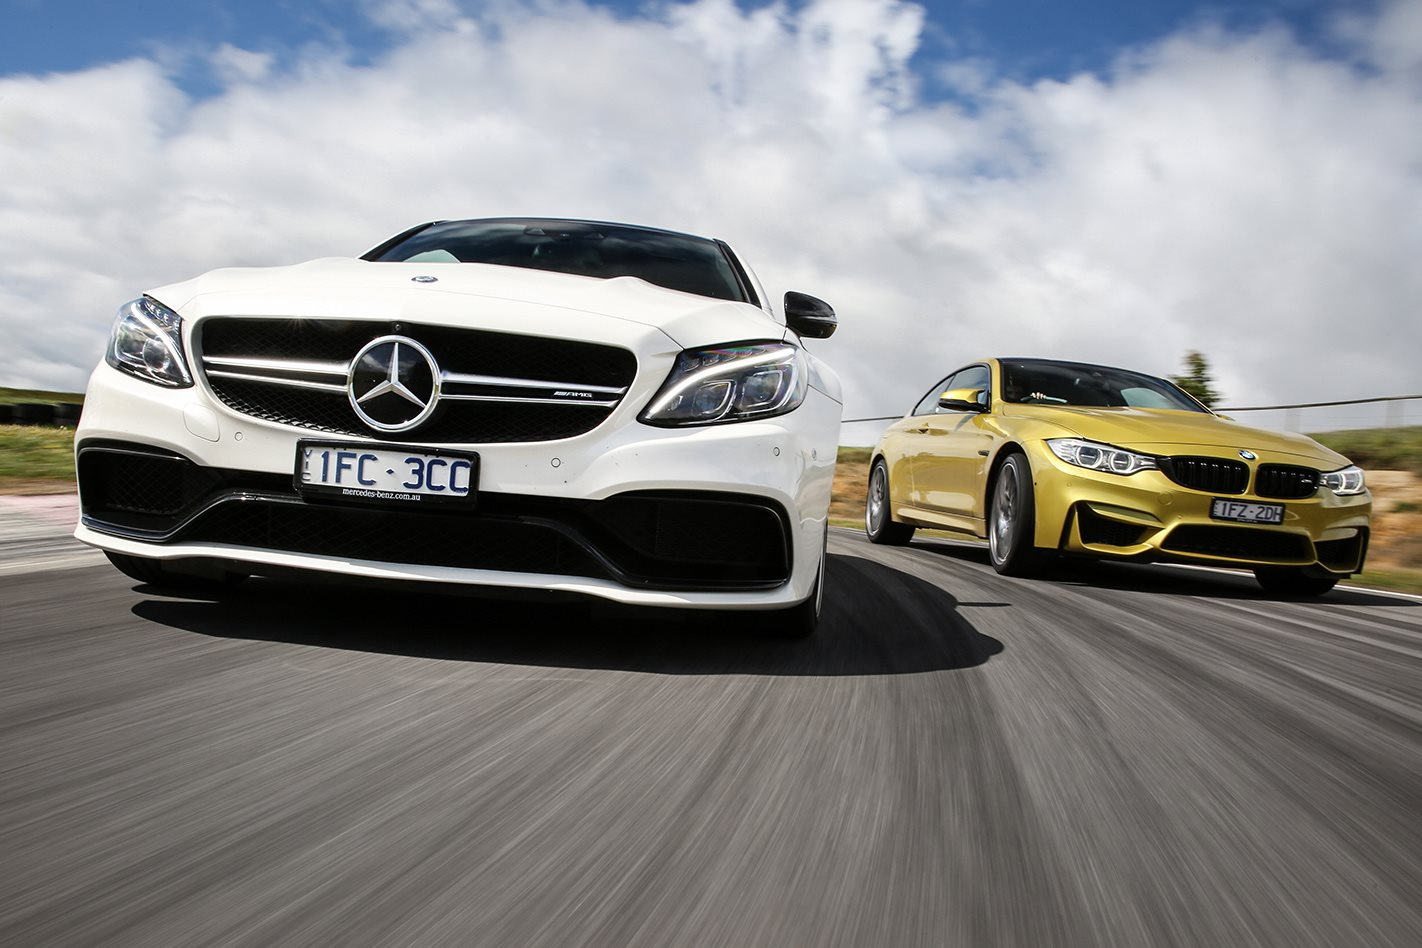 Mercedes Amg C63 S Coupe Vs Bmw M4 Competition